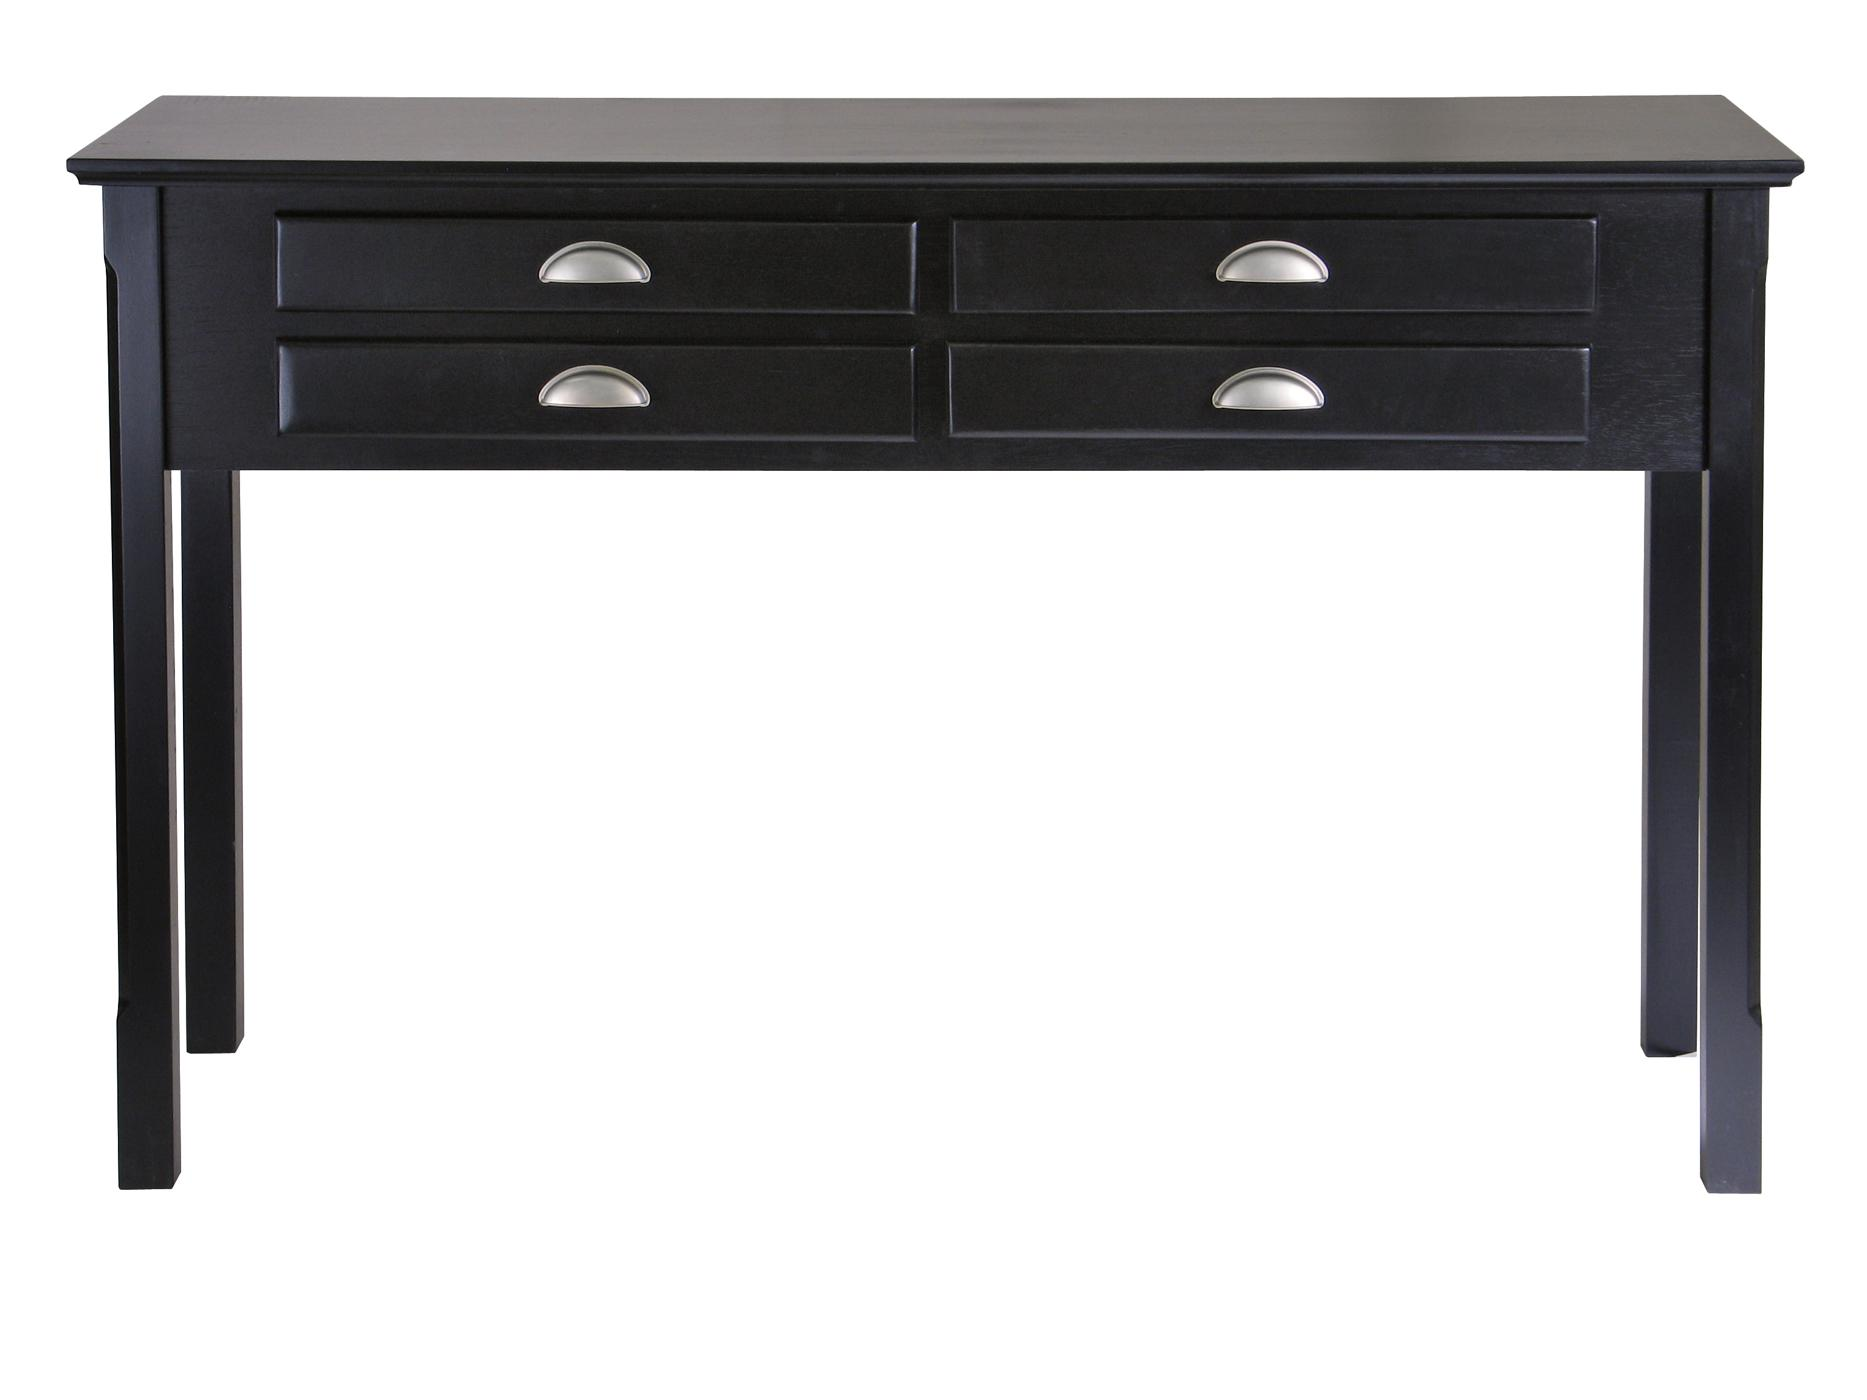 Timber hall console table drawers ojcommerce for Hall console table